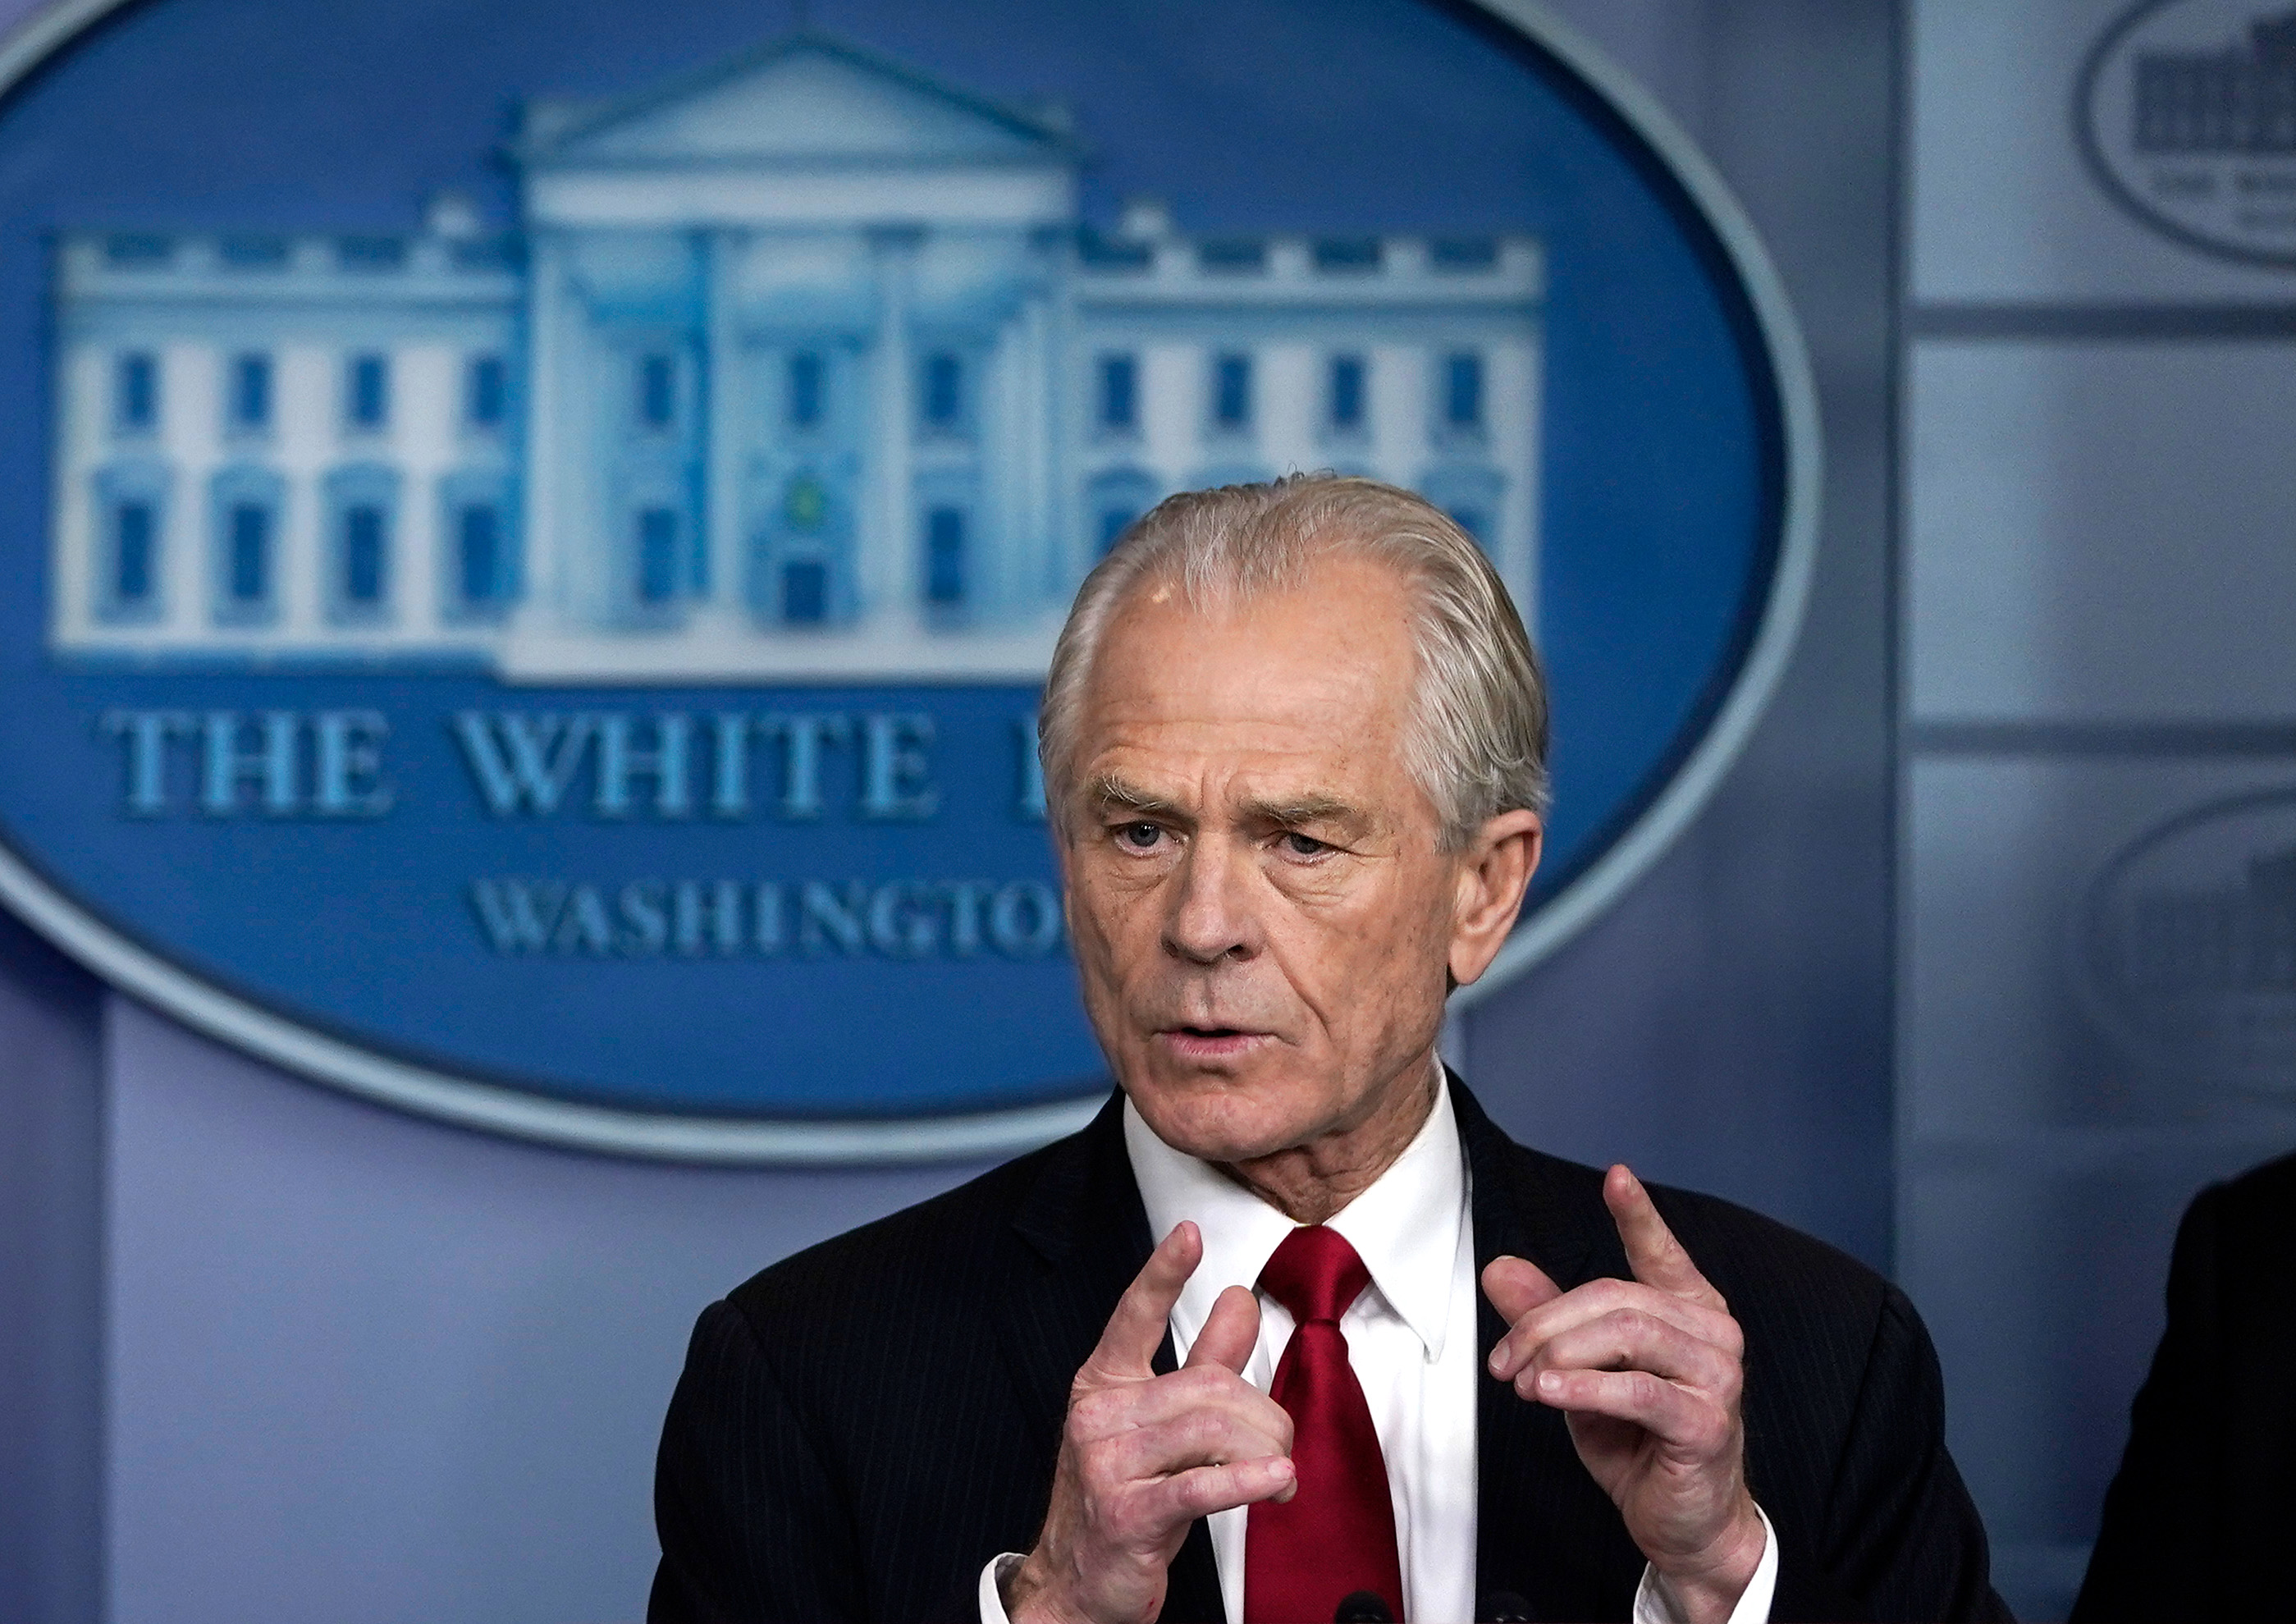 How Peter Navarro went from an anti-China 'gadfly' to trusted Trump coronavirus adviser